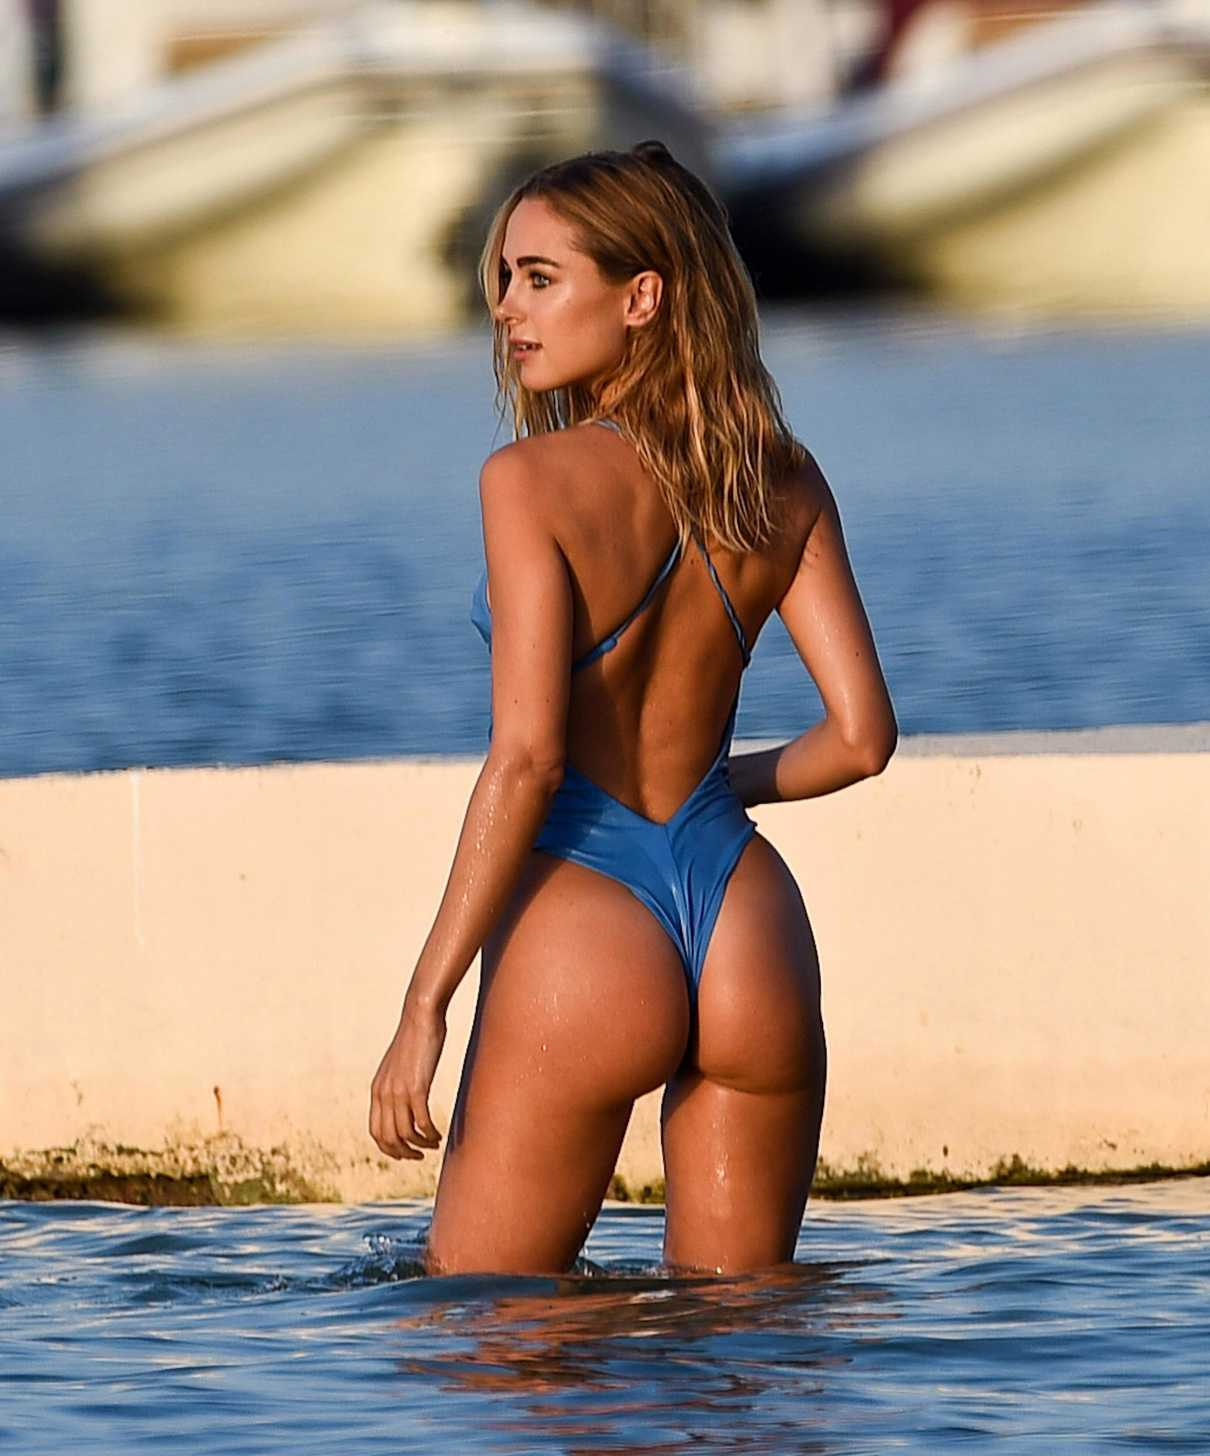 6a4c62a2f83ac Kimberley Garner Wears a Blue Swimsuit at the Beach in St Tropez  08 17 2017-2